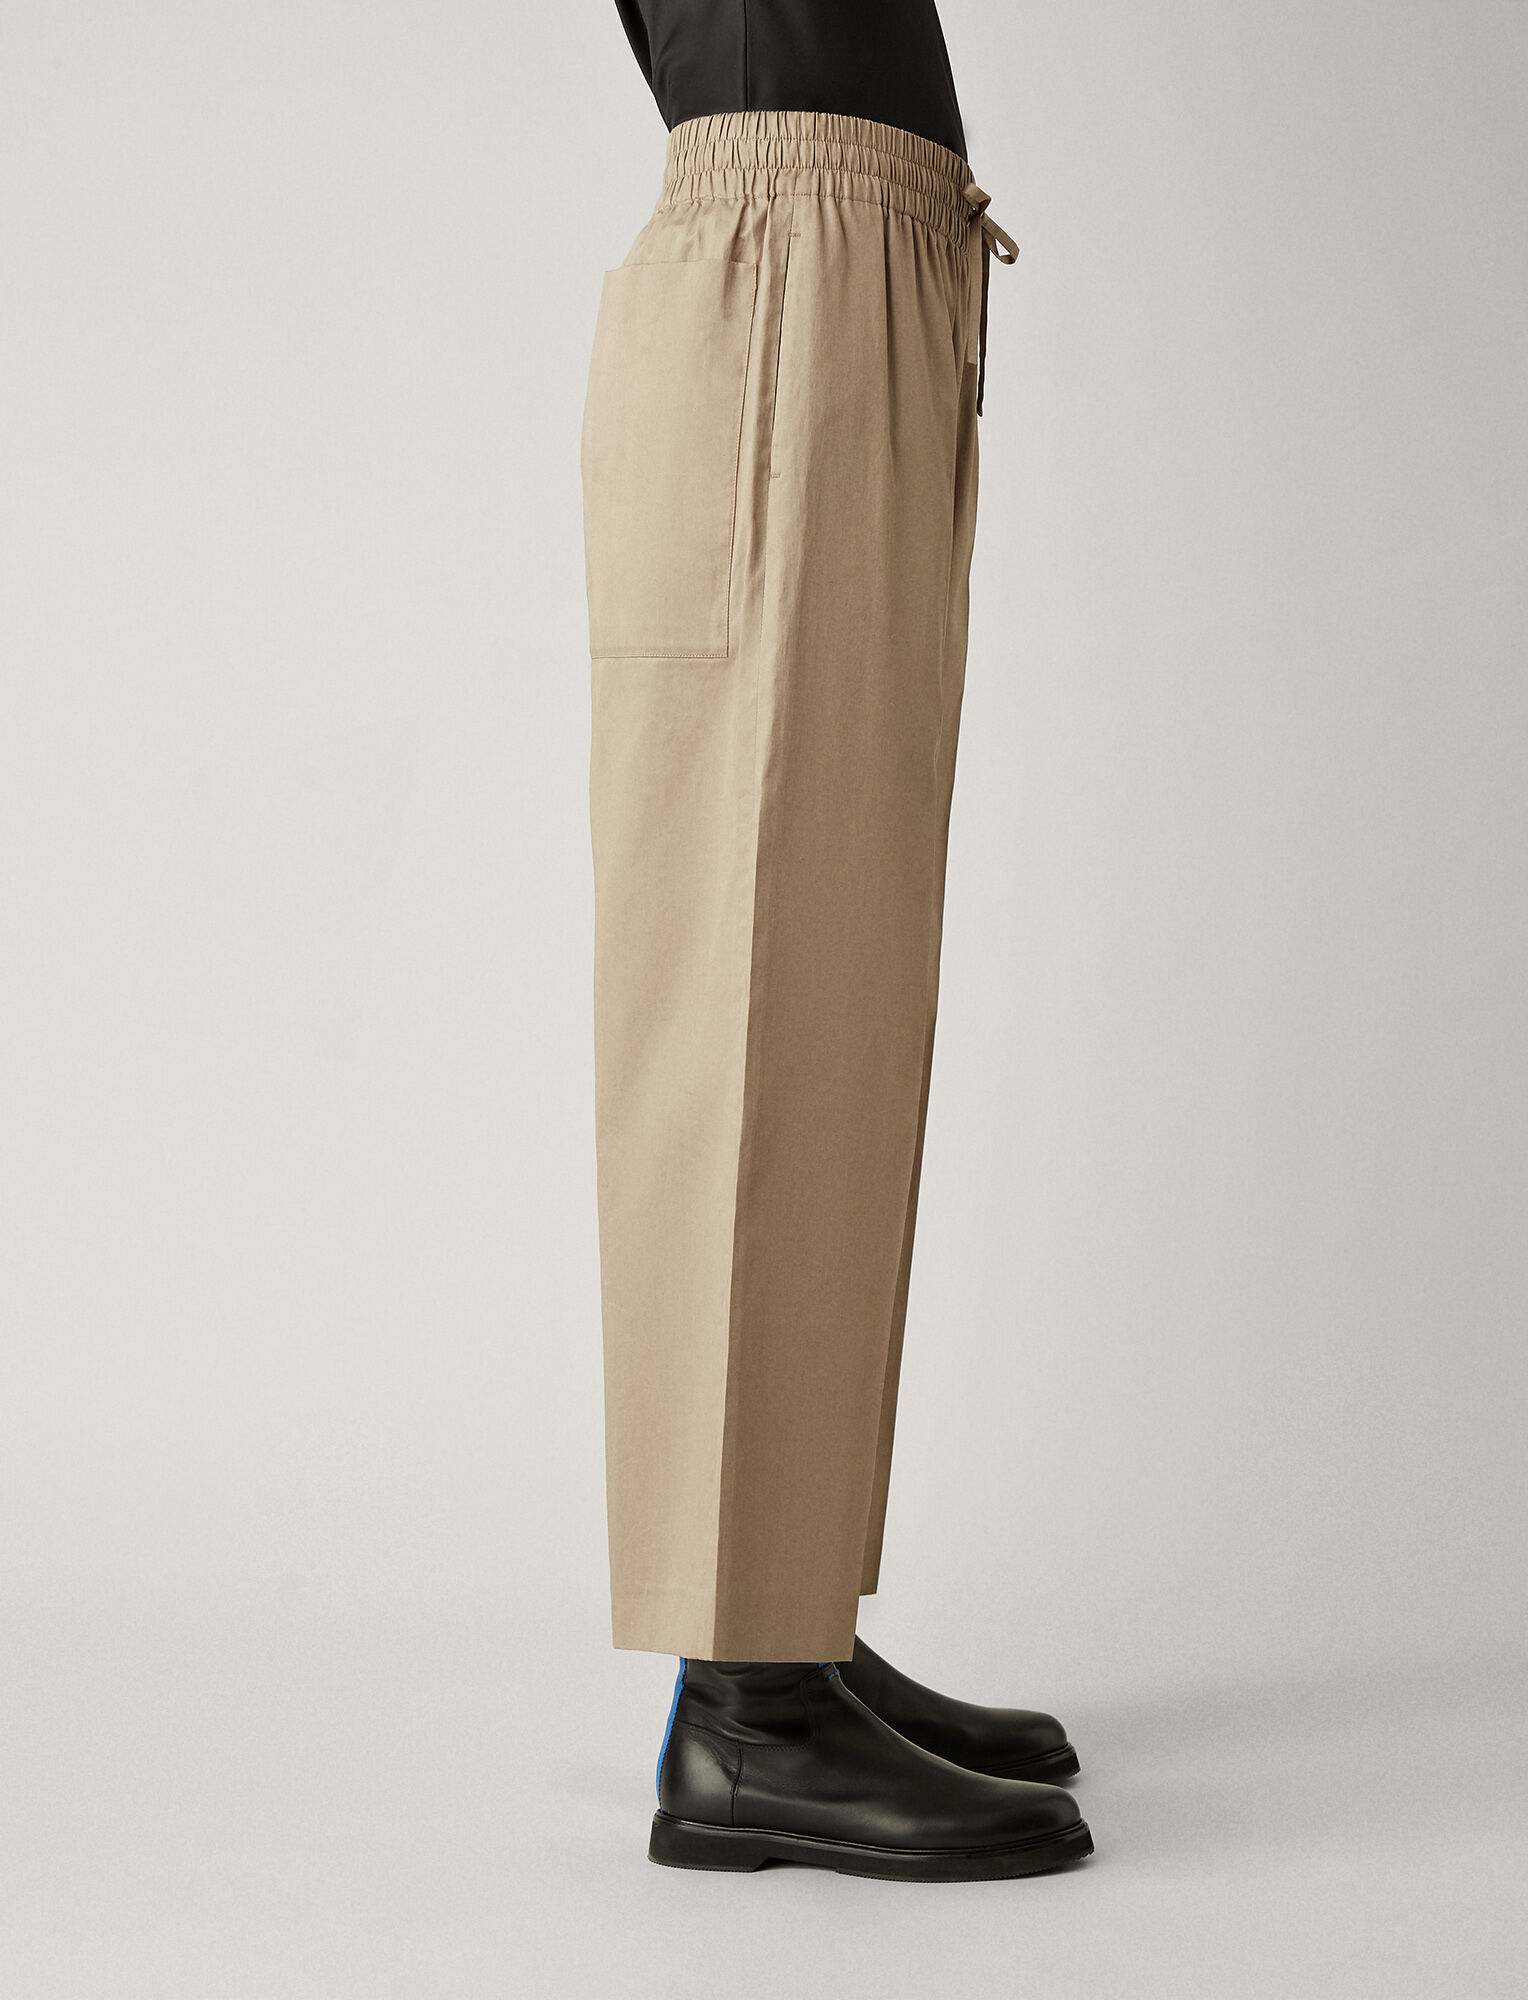 Joseph, Dahlman Refined Cotton Trousers, in QUARTZ